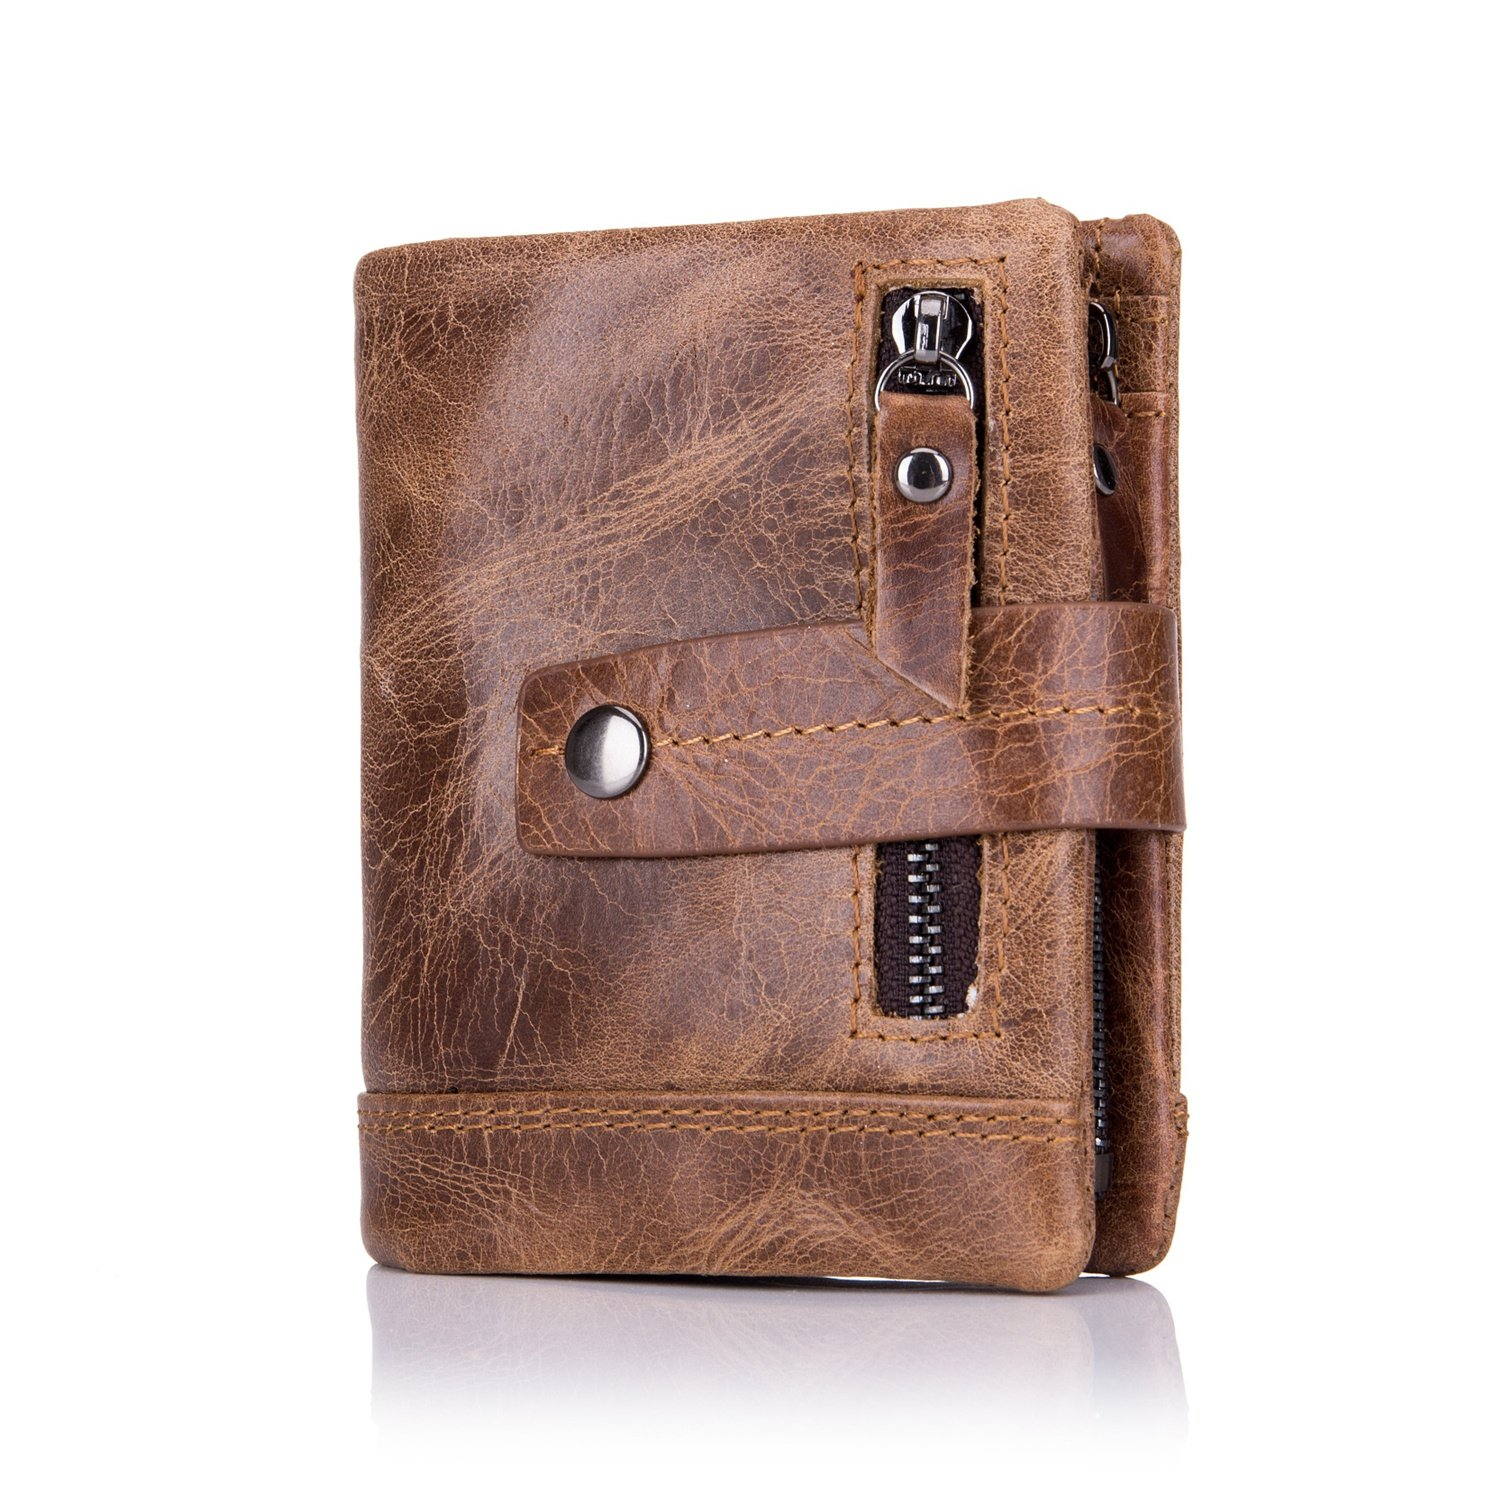 2ec4f42a19538 Amazon.com  BULL CAPTAIN Men s Wallet Leather Front Pocket Premium Leather  Bifold Wallets with Zipper Coin Pocket Pouch QB-4 (Brown)  Shoes